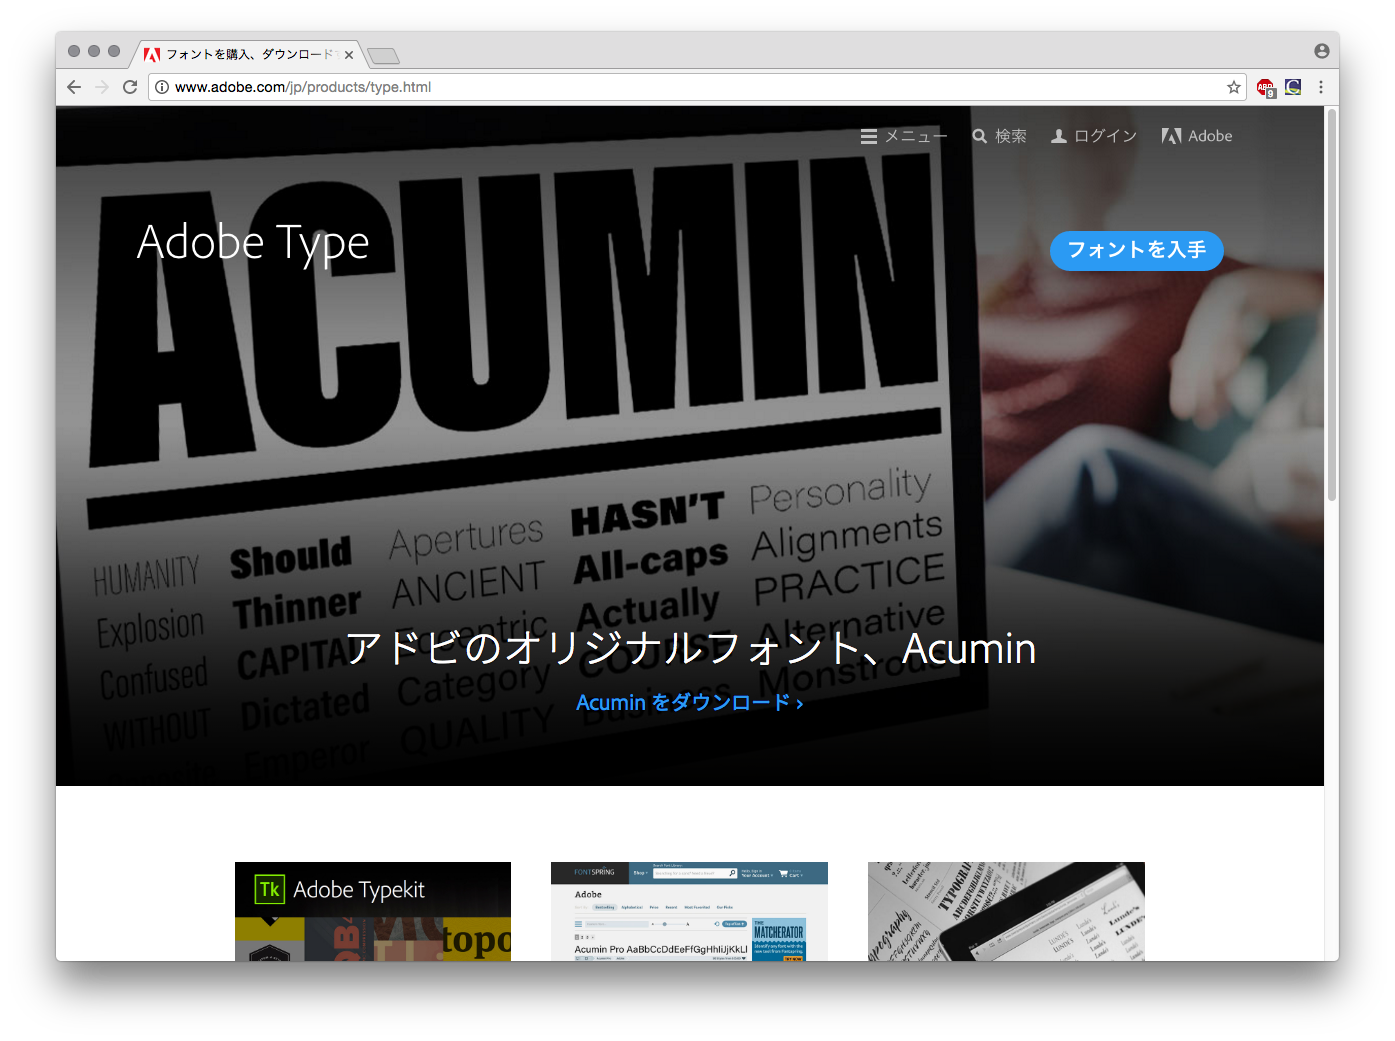 http://www.adobe.com/jp/products/type.html